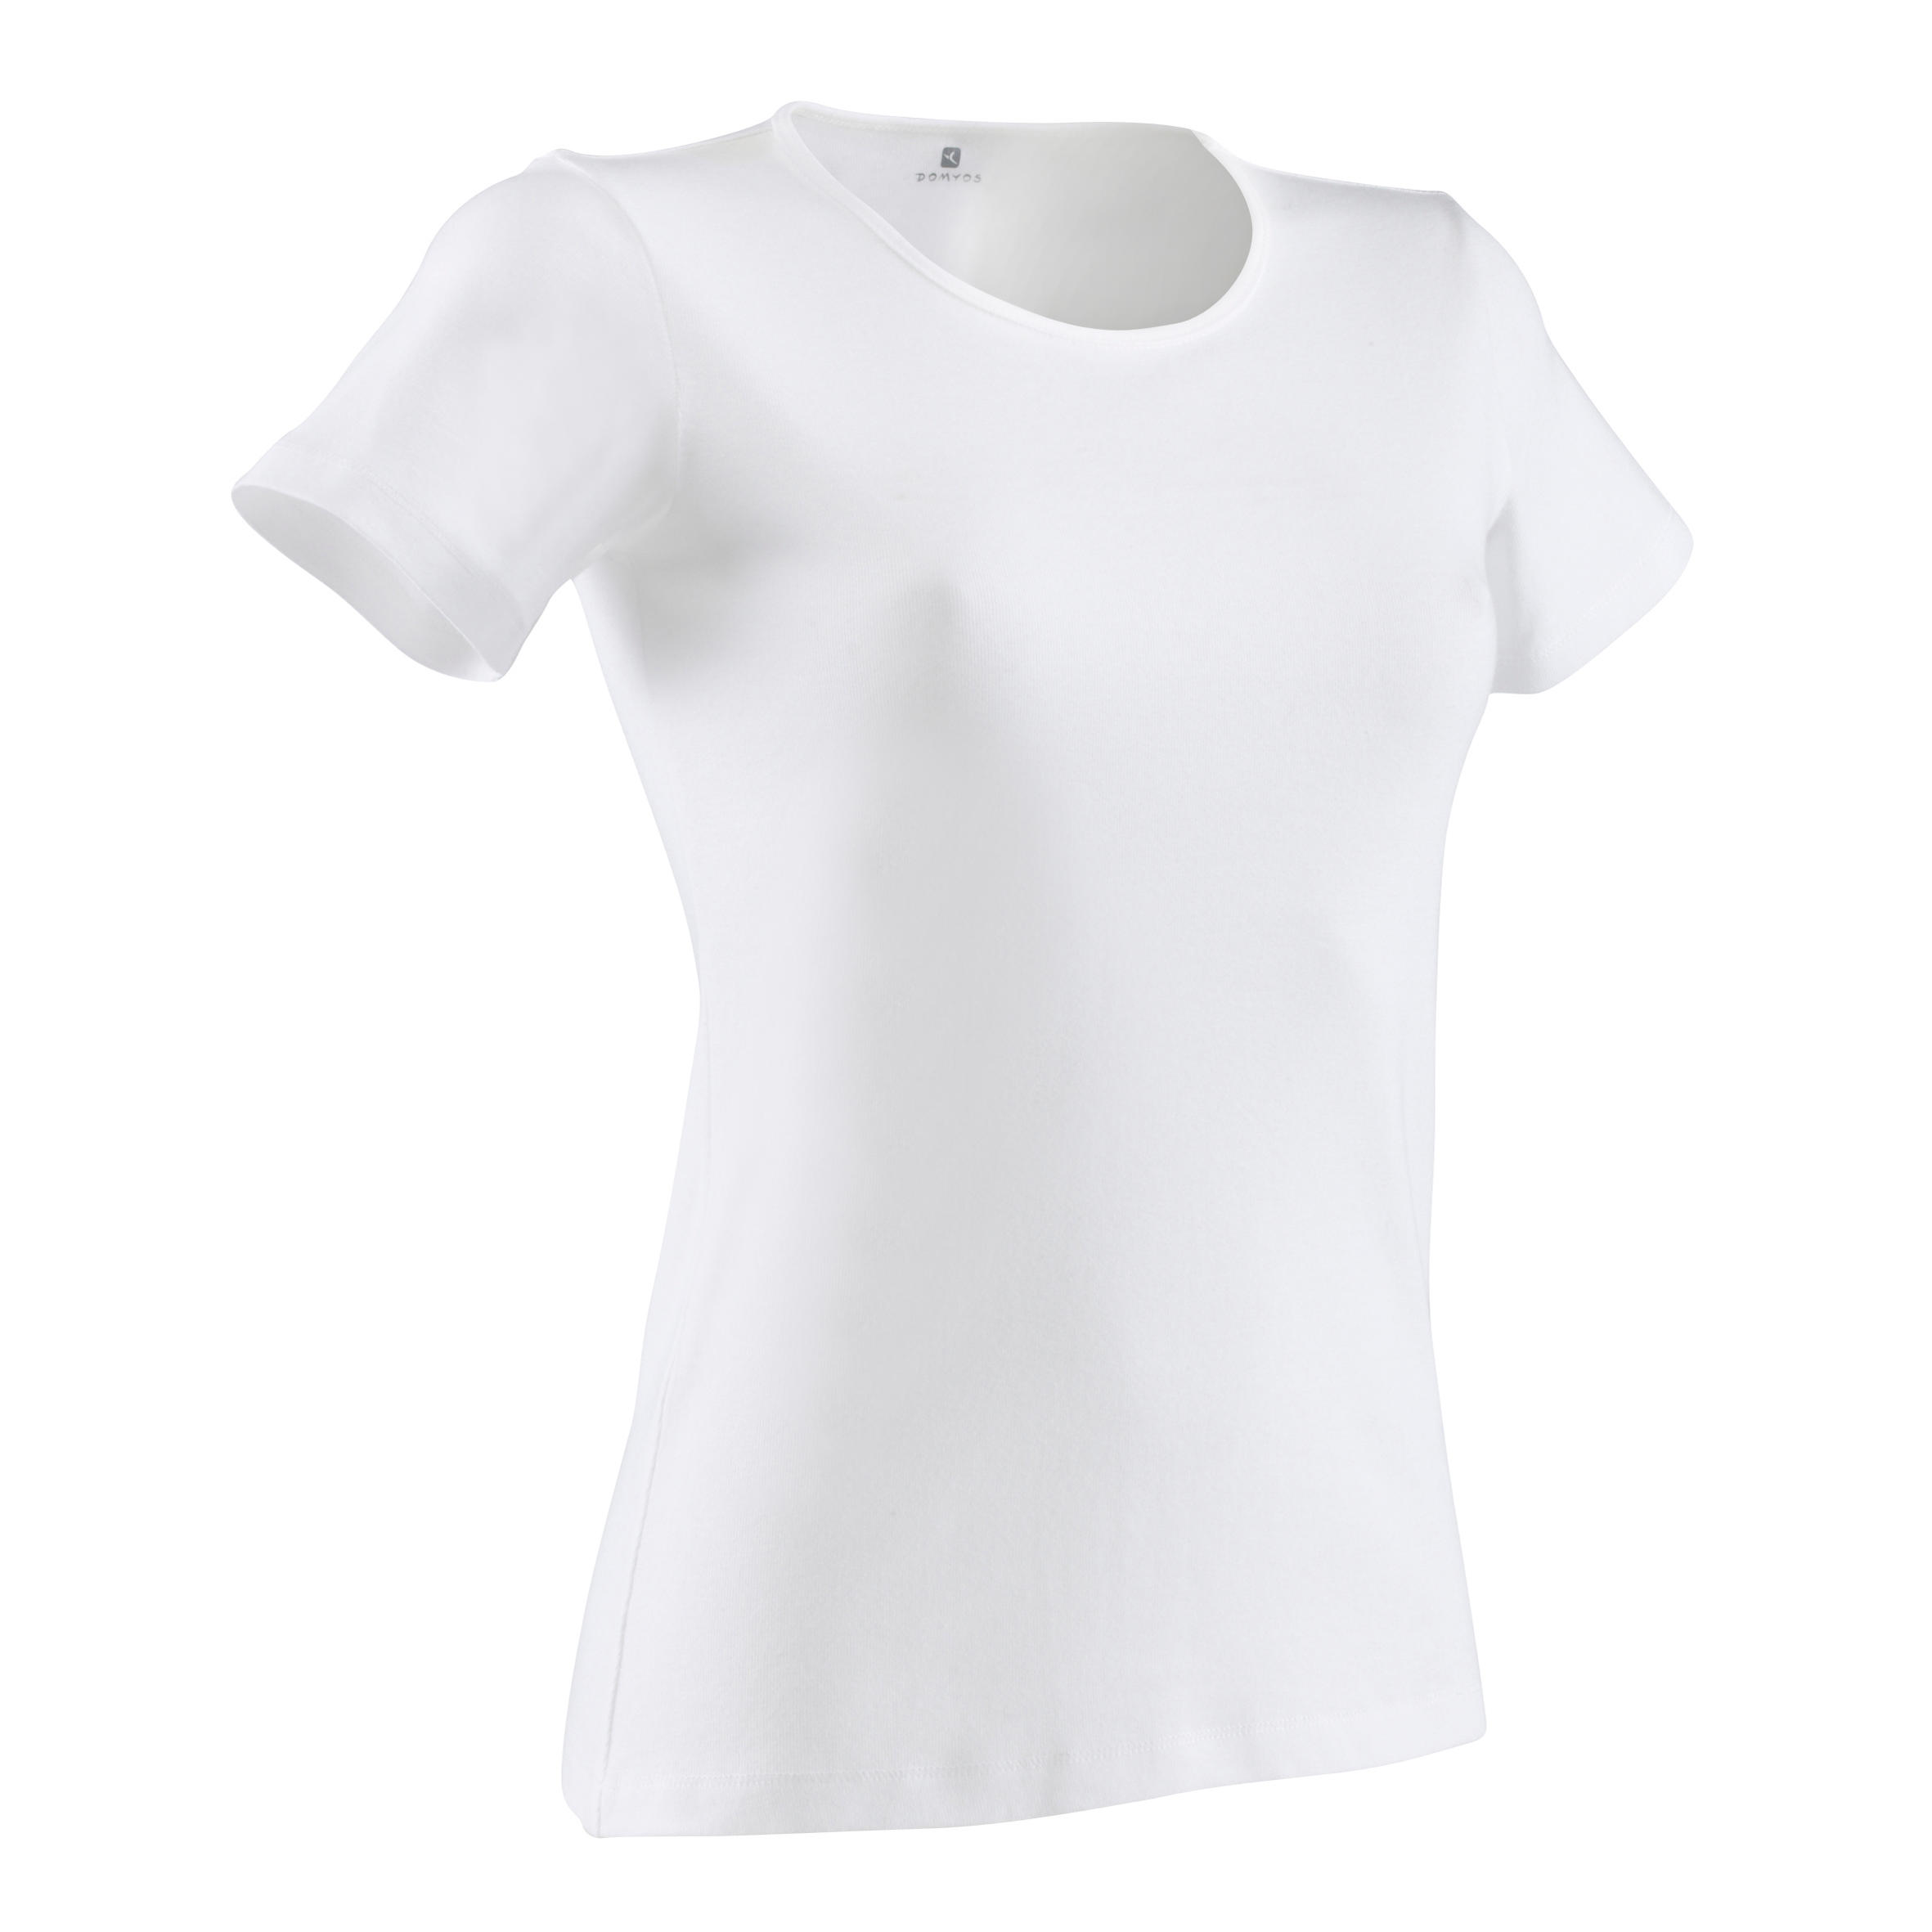 100 Sportee Women's Stretching T-Shirt - White